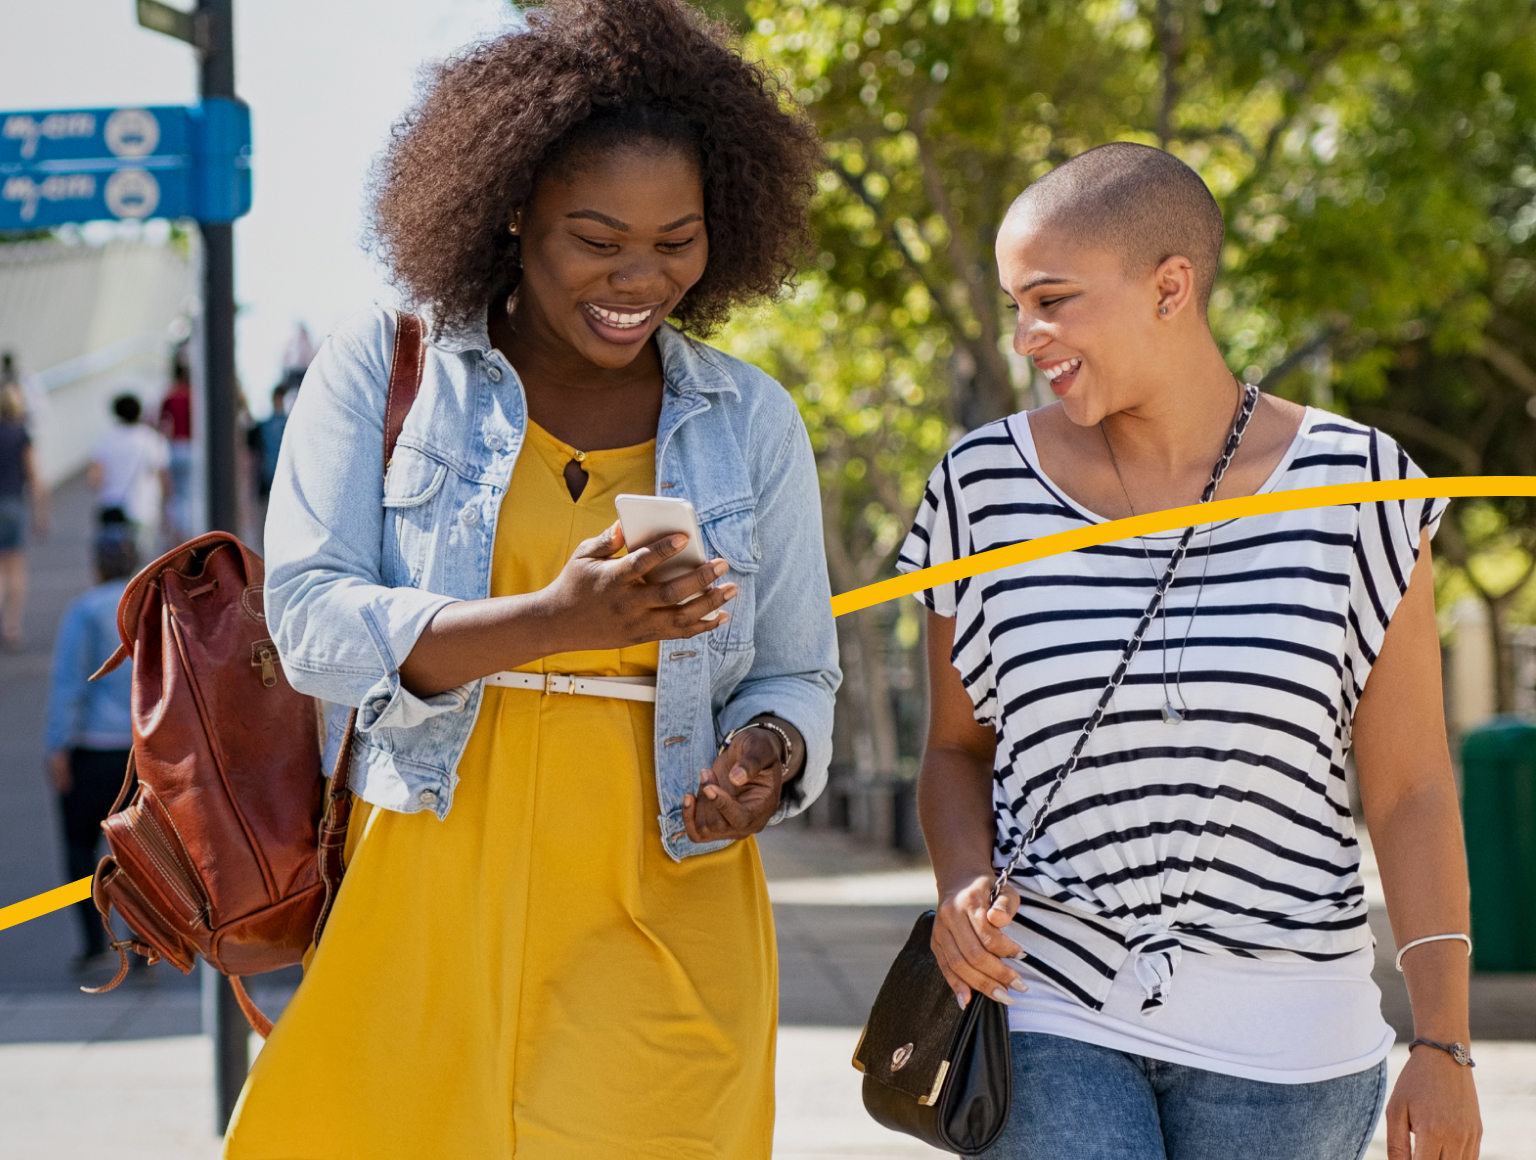 Two women walking in a city looking at a phone